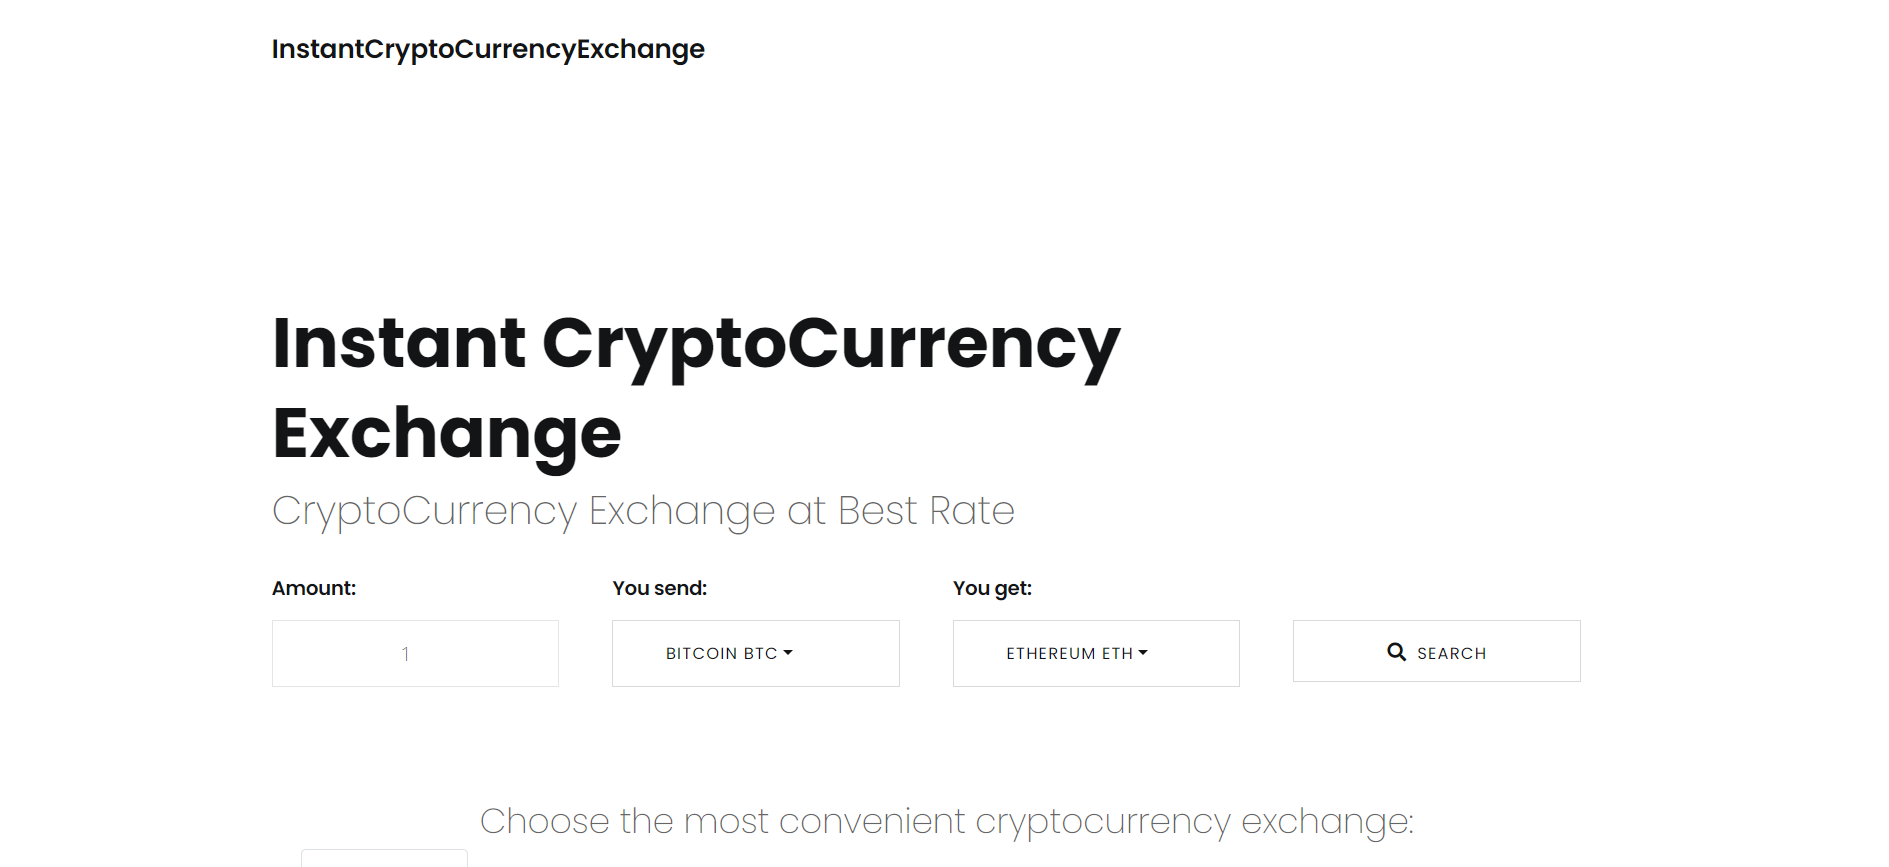 Exchange Cryptocurrency at Best Rate